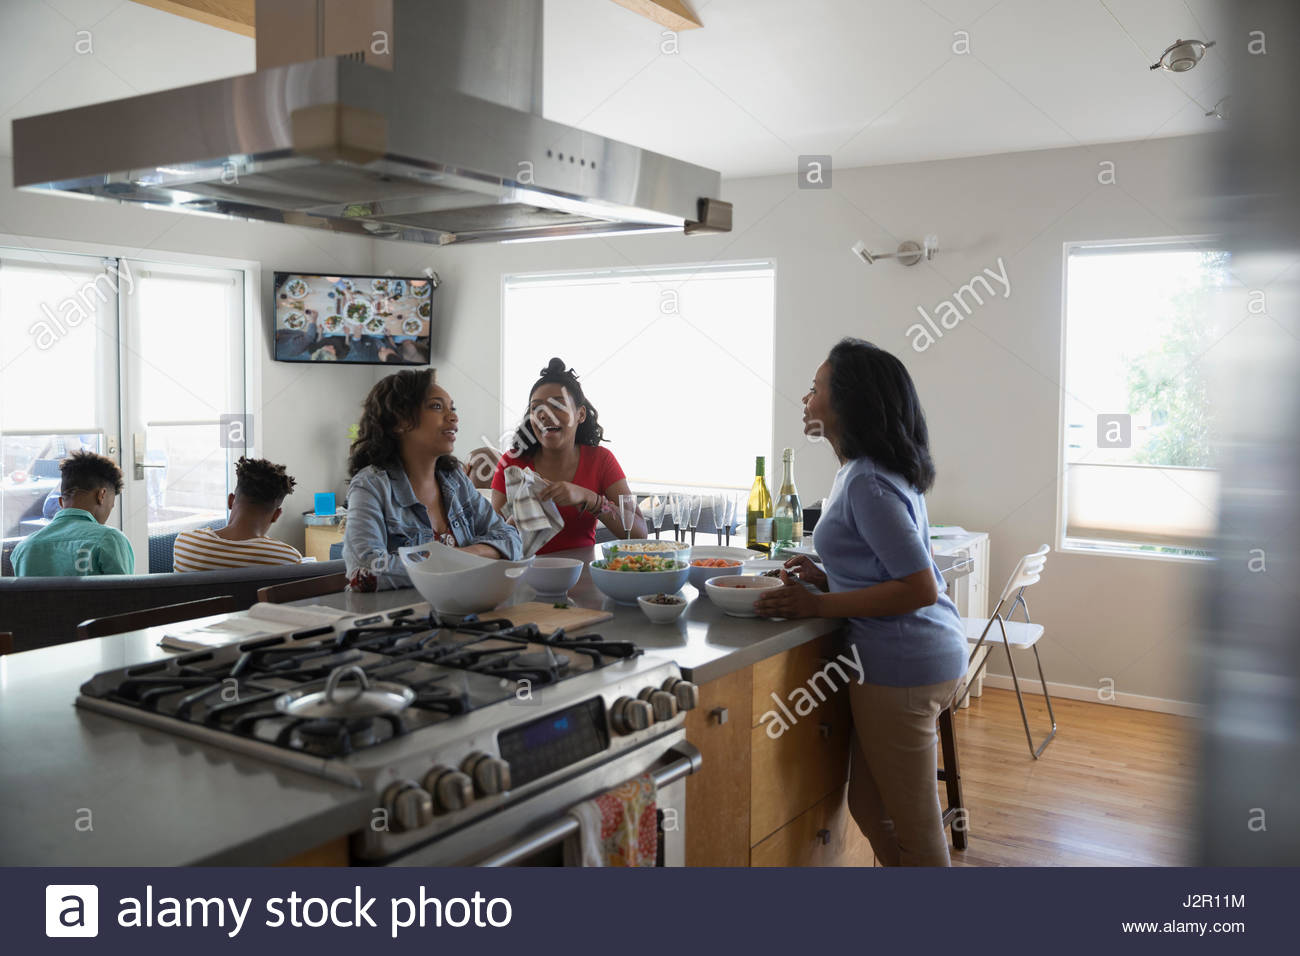 African American mother and teenage daughters cooking and eating in kitchen - Stock Image